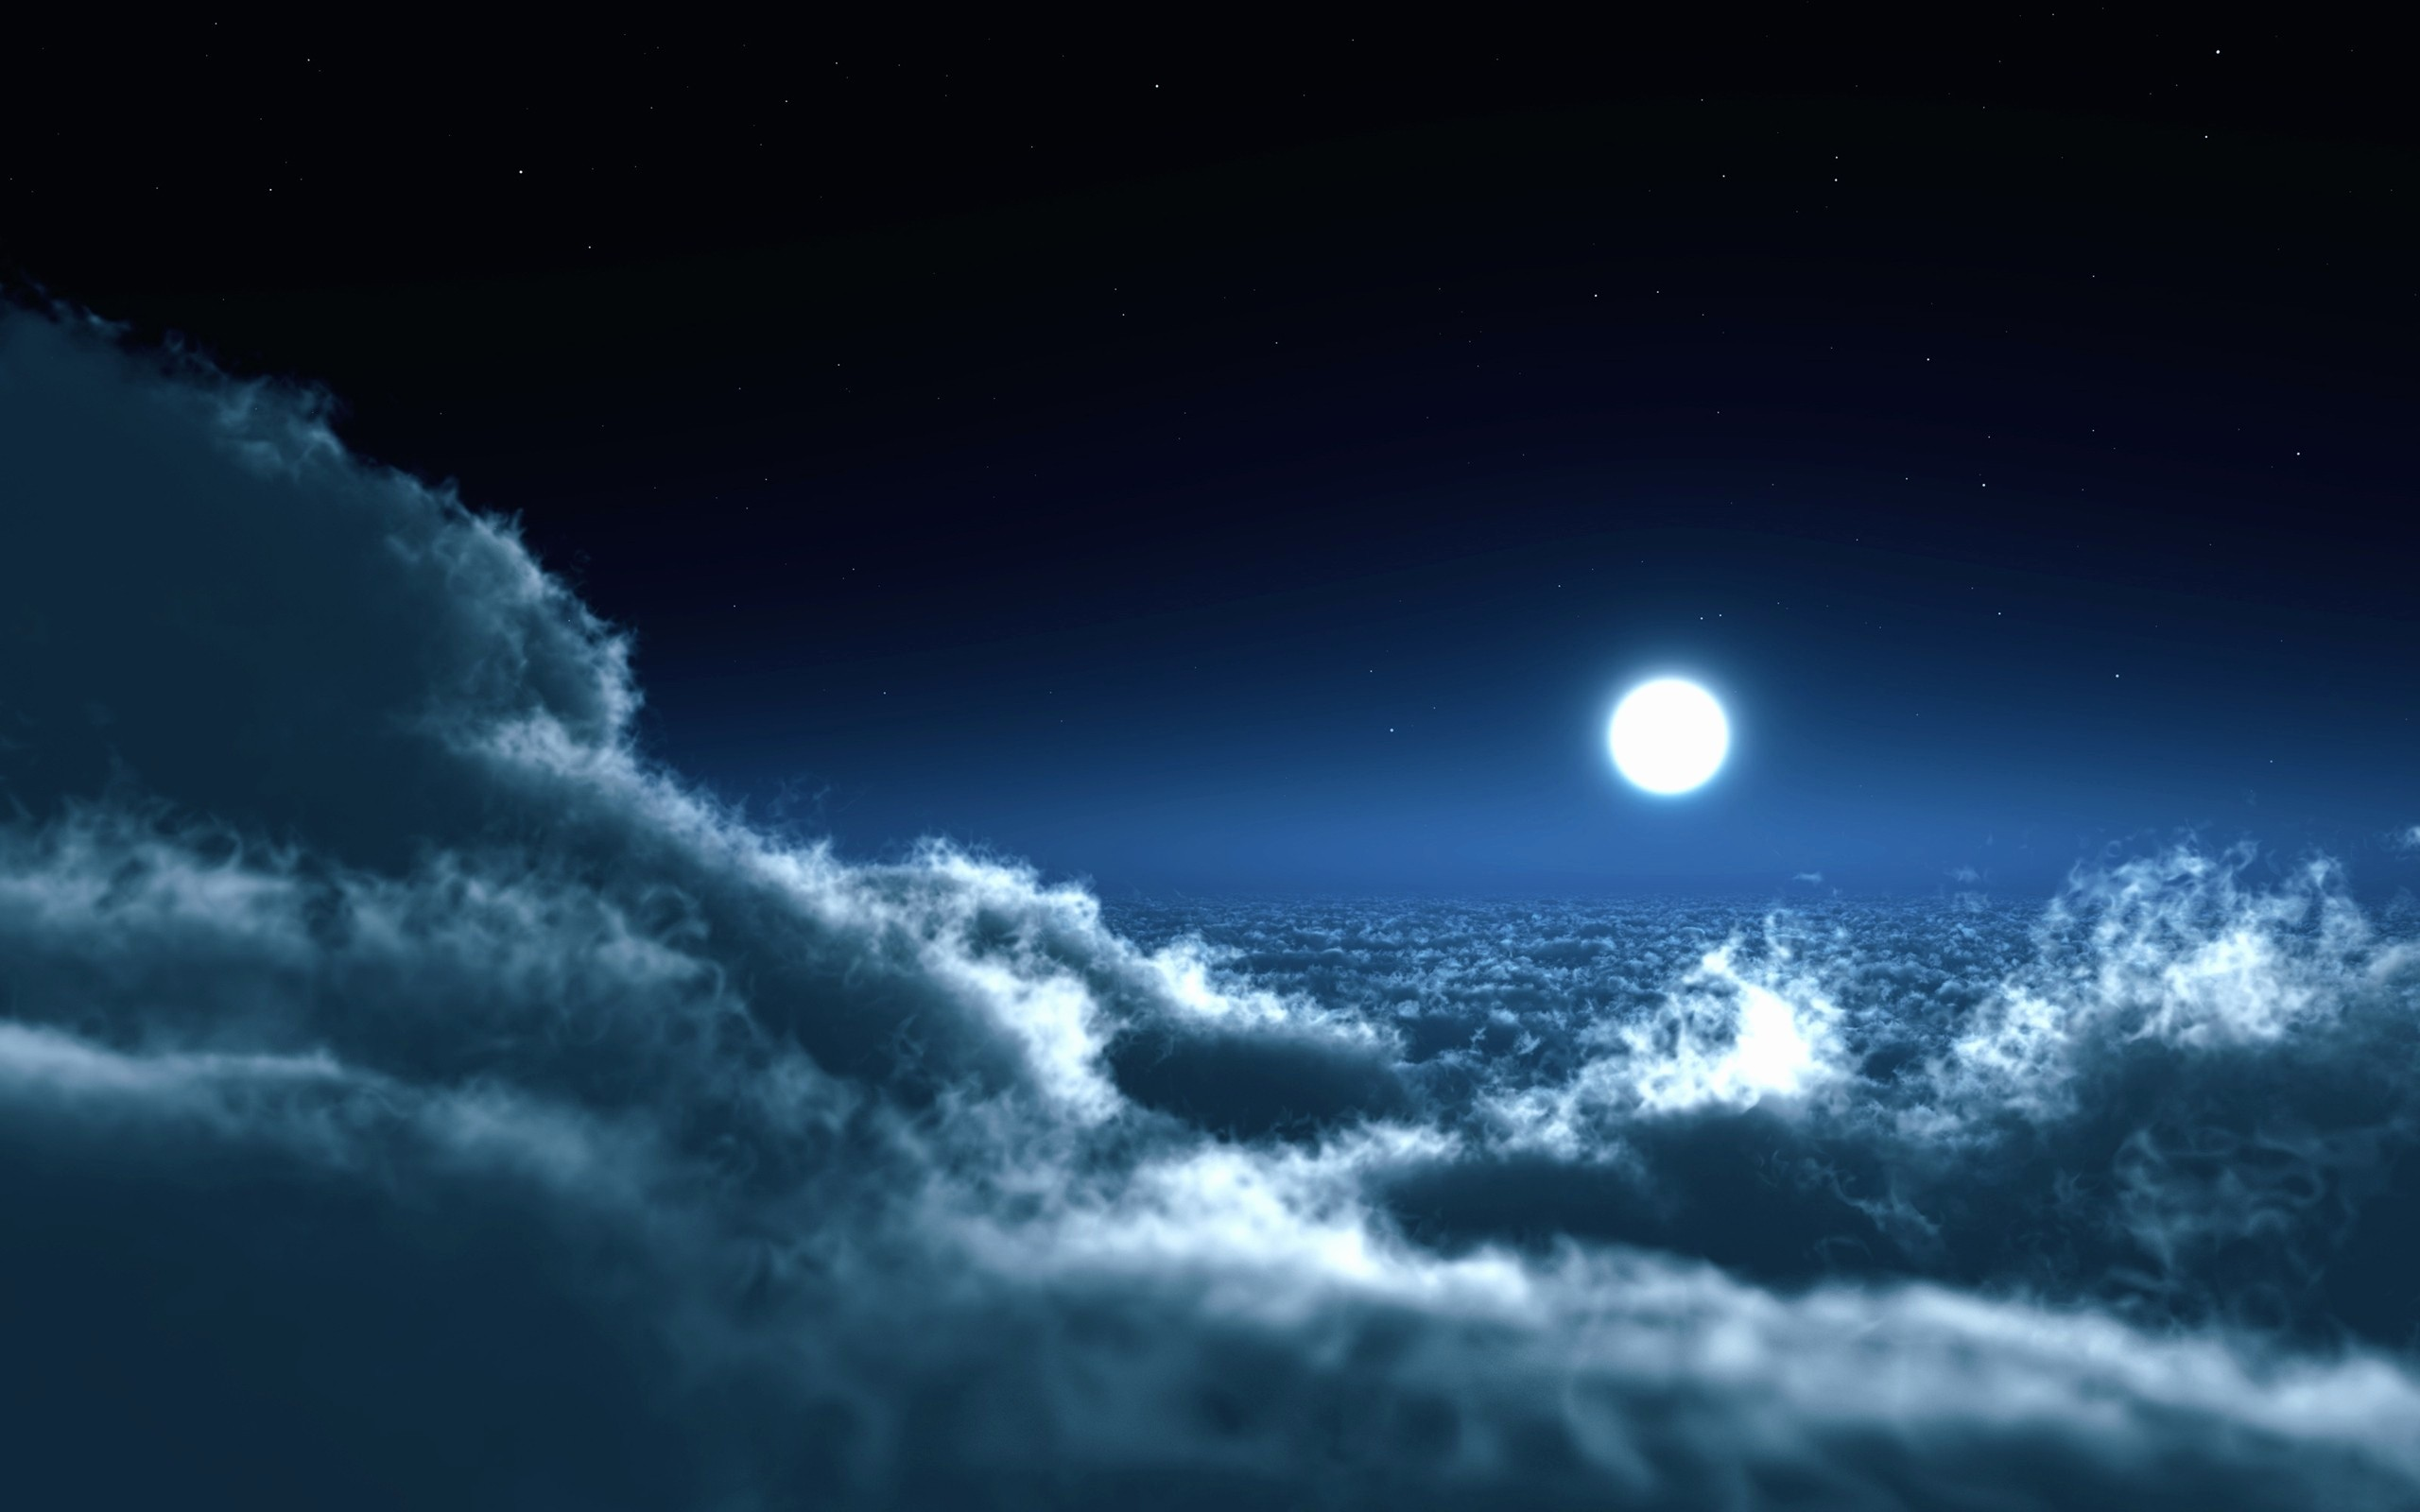 Vintage Sailing Ship In The Full Moon Wallpaper - Night Sky Above Clouds , HD Wallpaper & Backgrounds